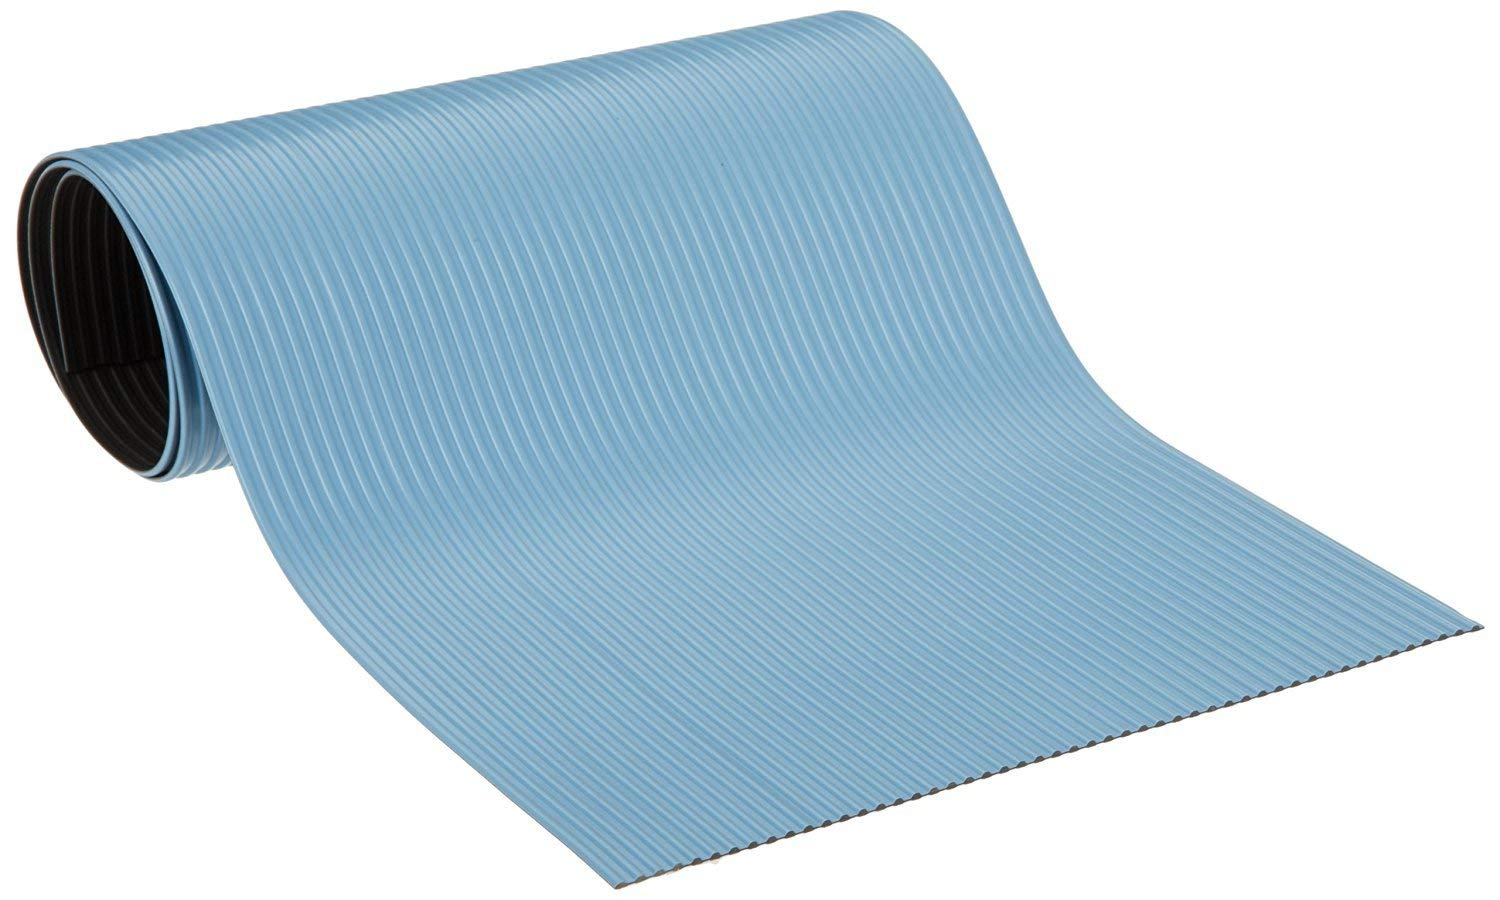 2x3-pool-step-liner-protection-pad